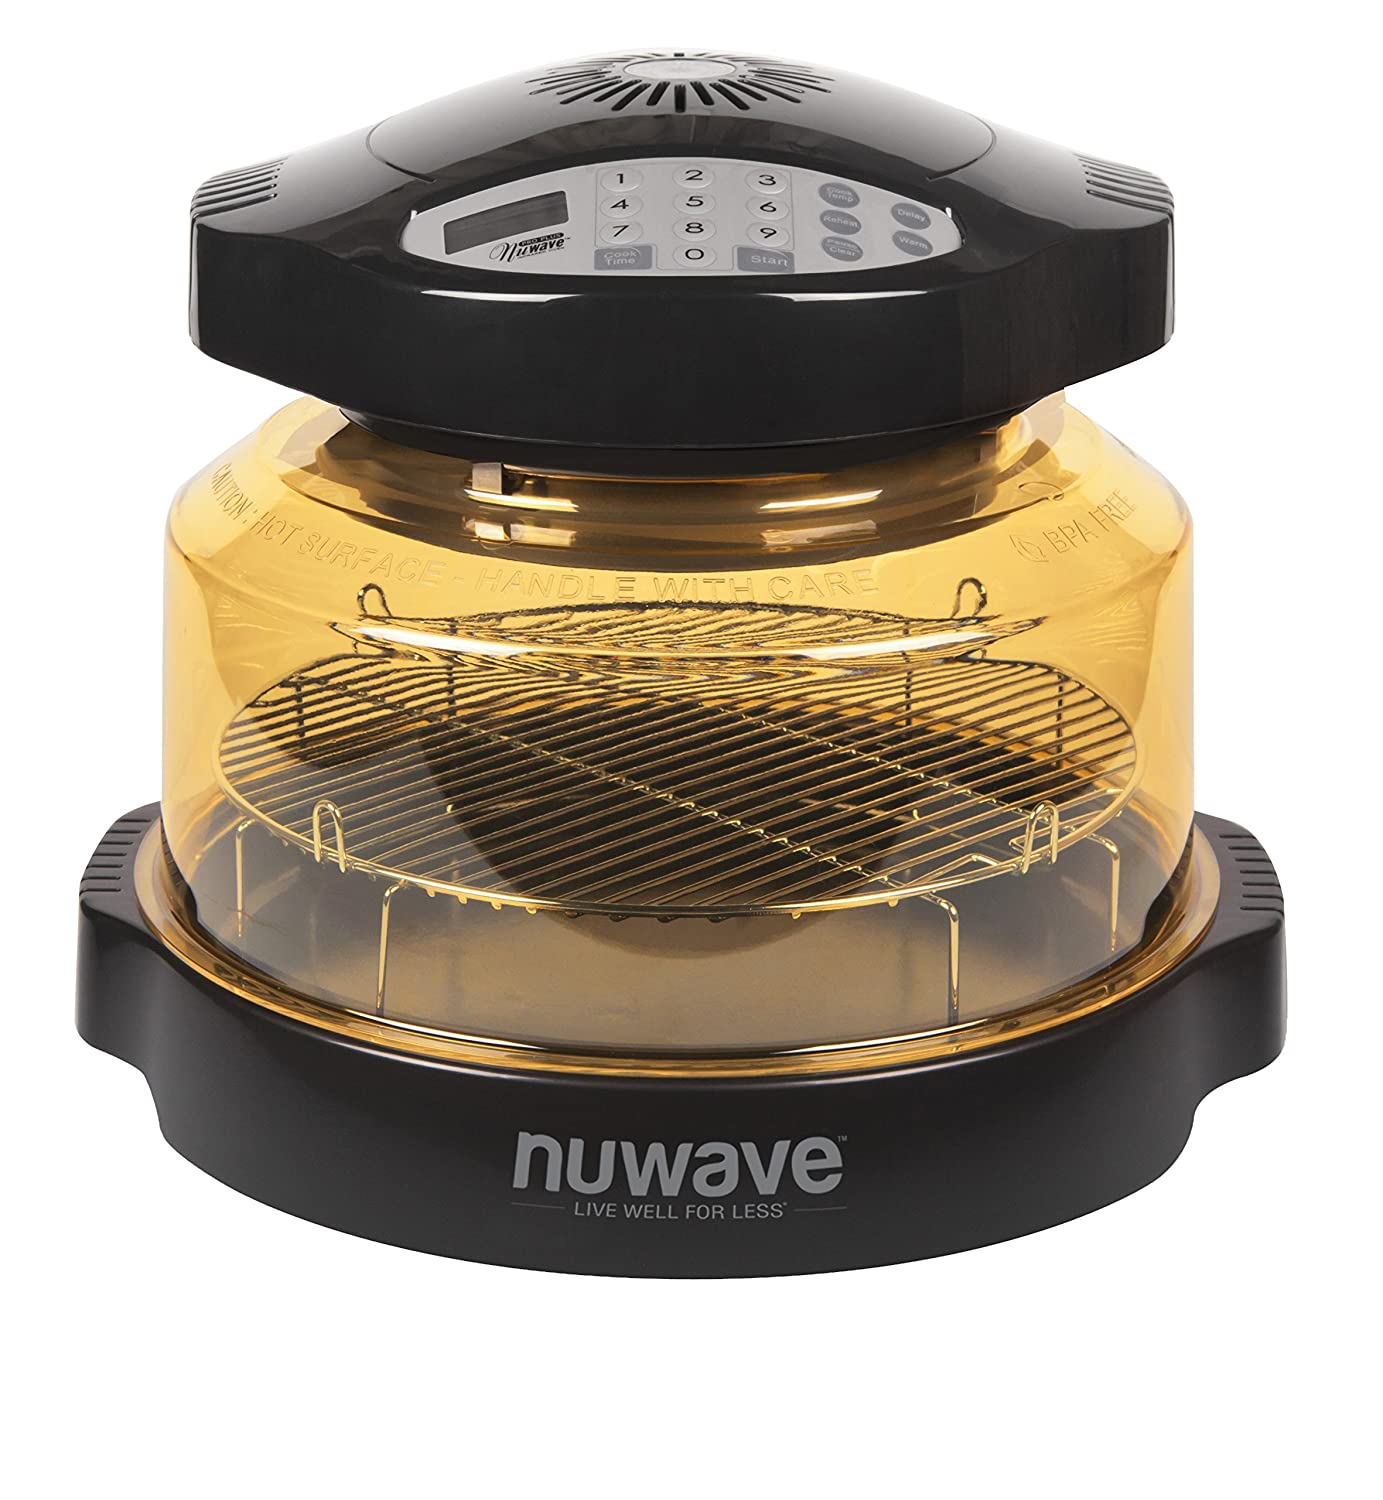 Nuwave Fryer Cake Recipes Videos